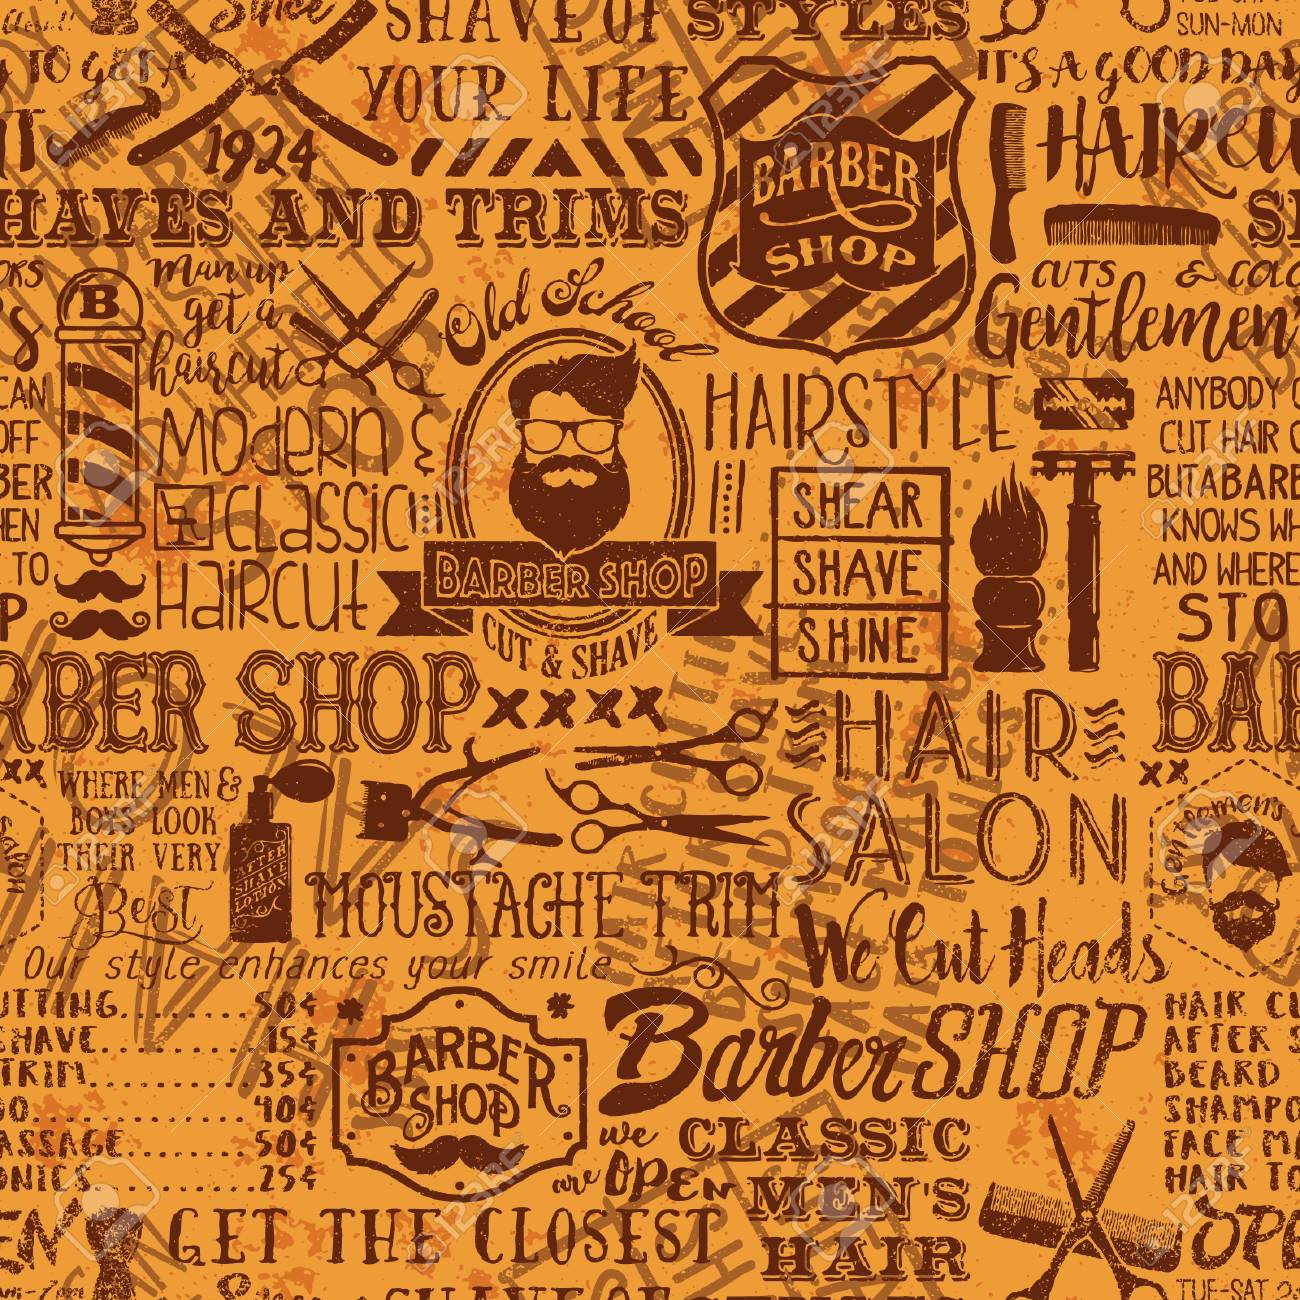 barber shop elements and icons patchwork background, vector grunge